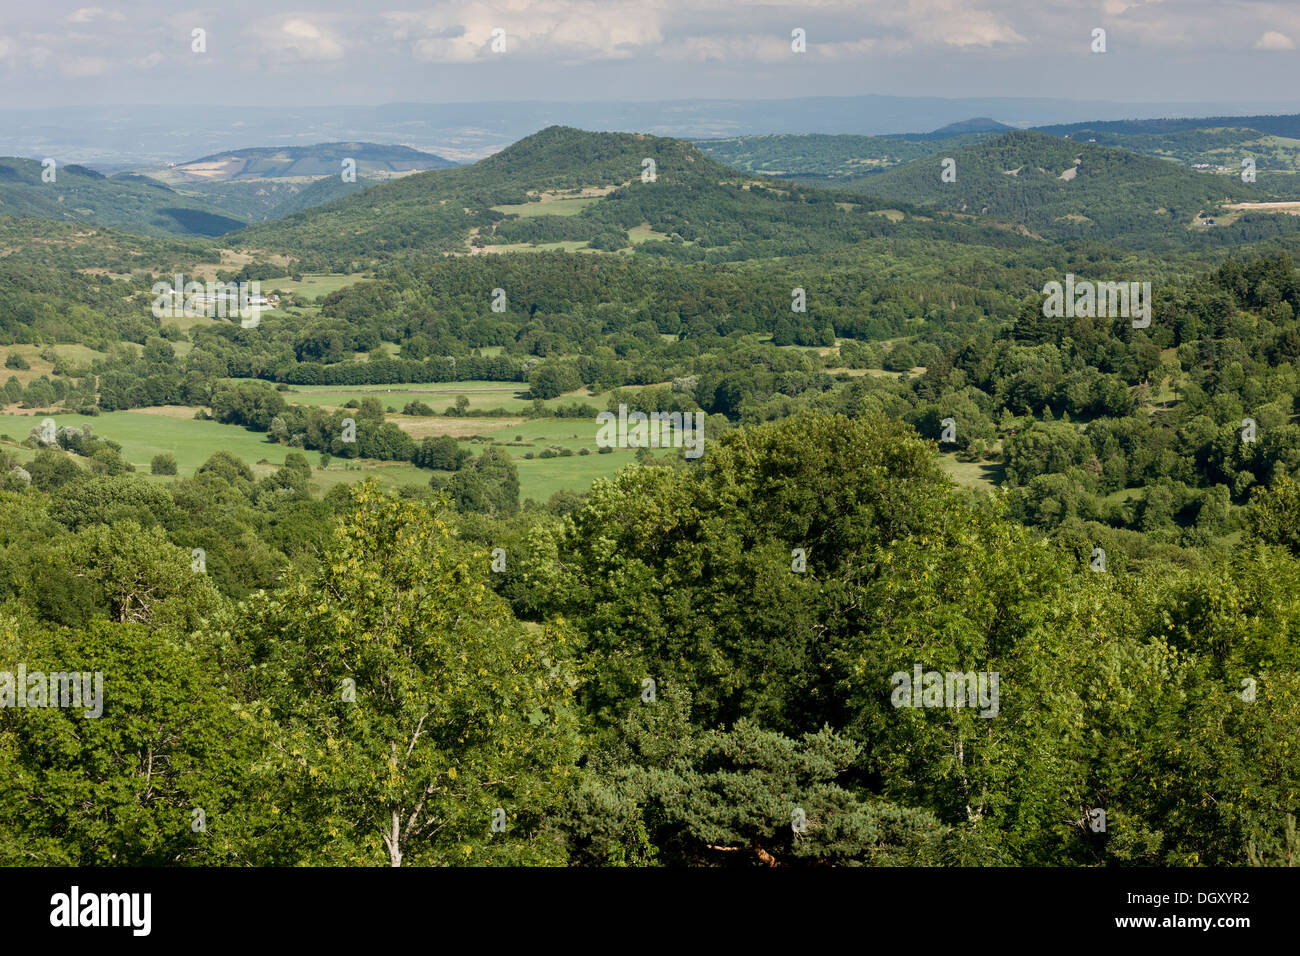 The Auvergne, looking east over rolling wooded volcanic countryside from Murol. - Stock Image